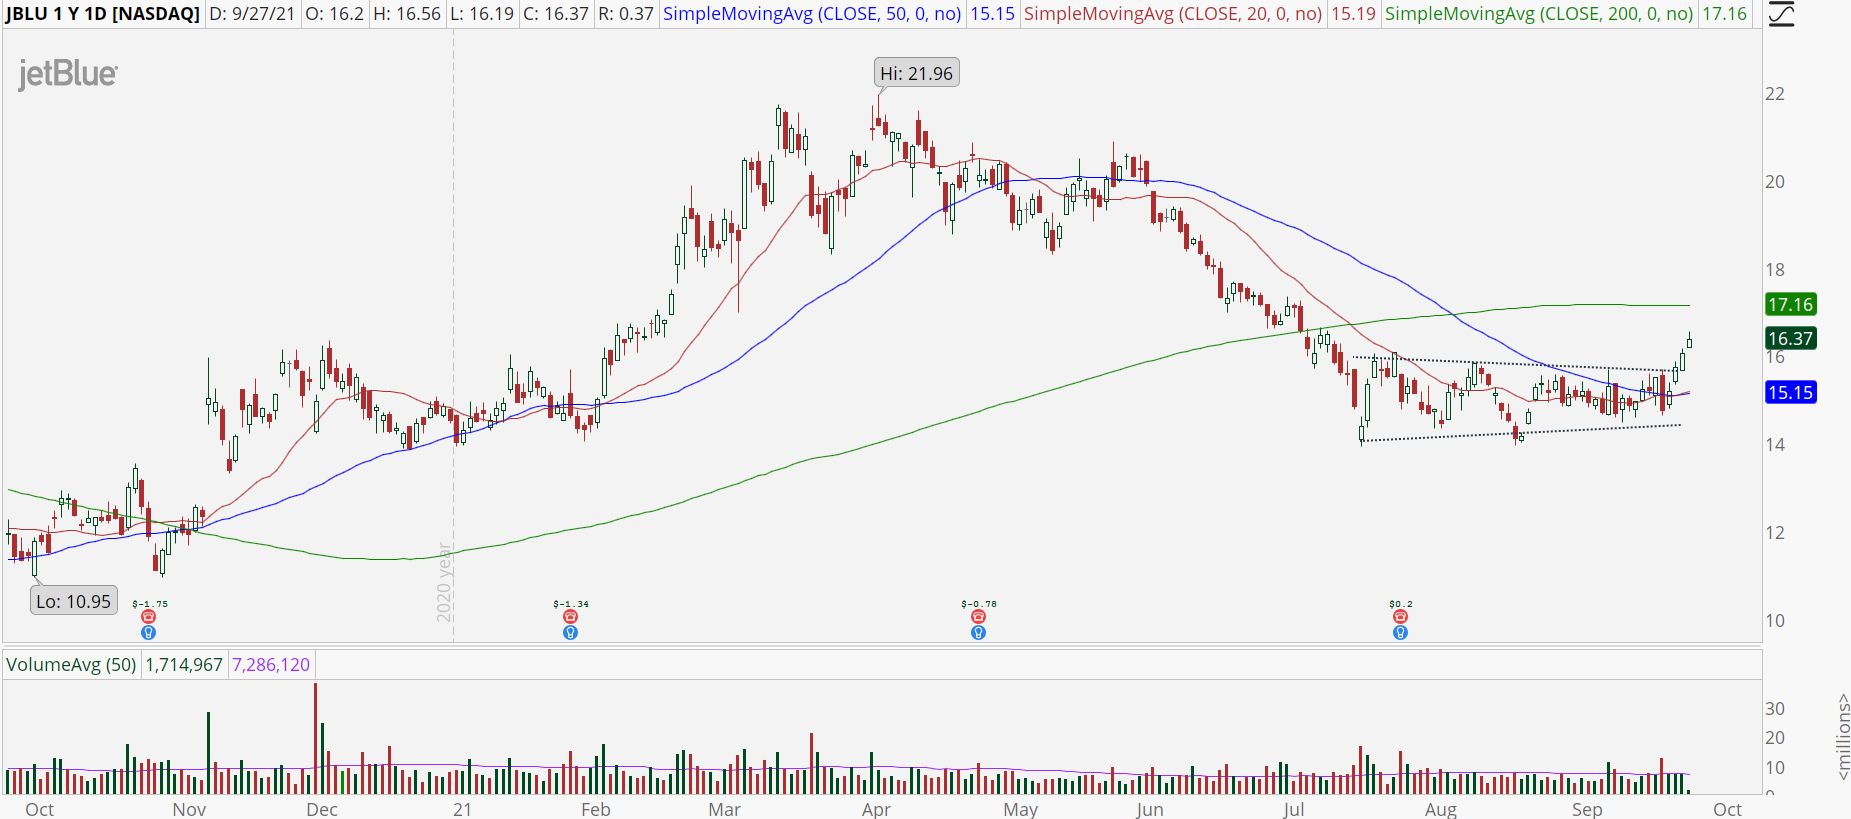 JetBlue (JBLU) stock chart with bottoming formation breakout.